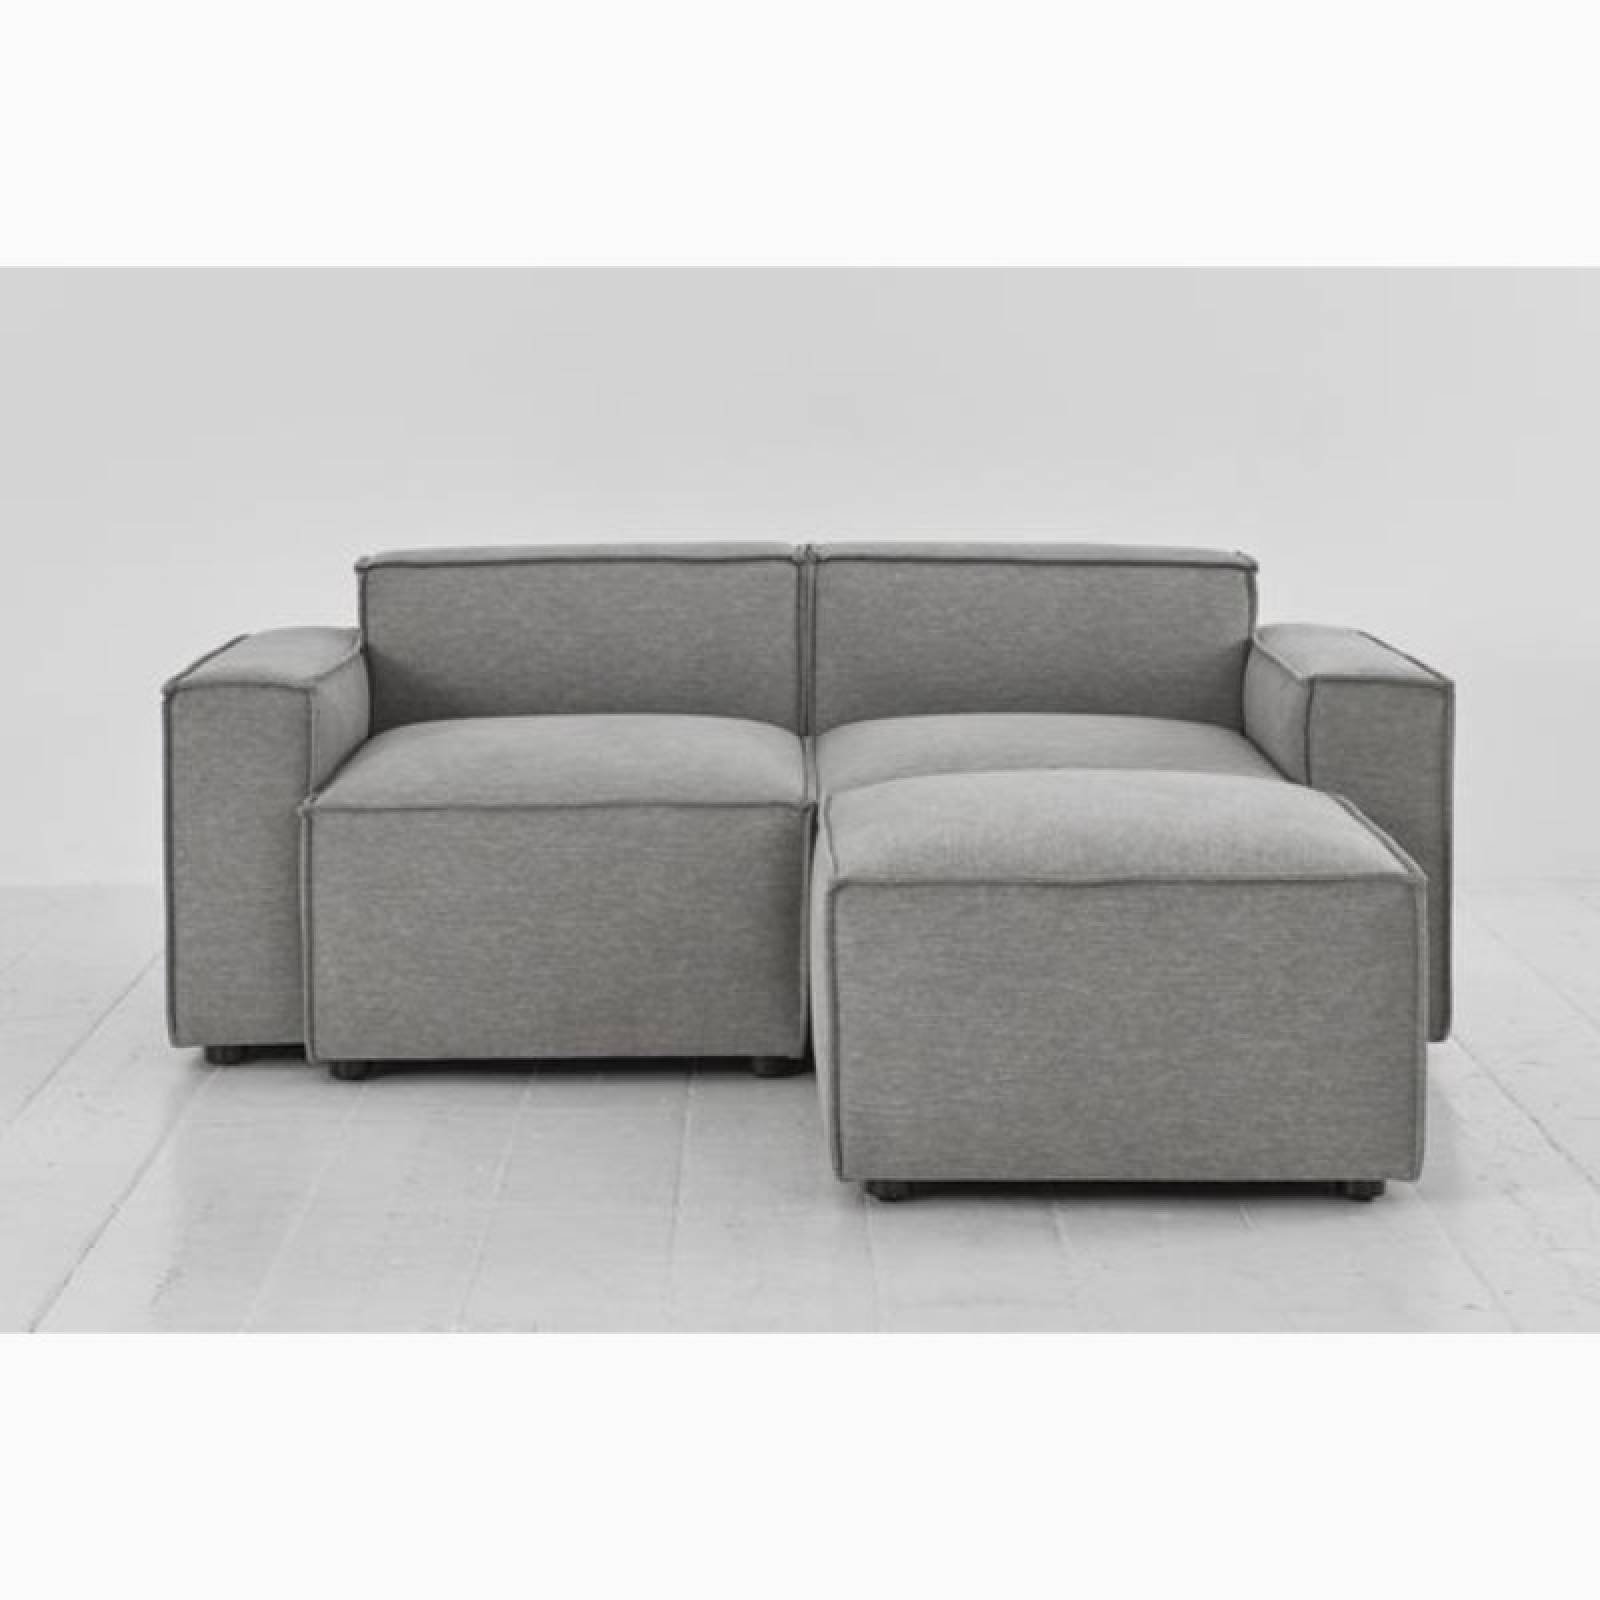 Swyft - Model 03 - 2 Seater Sofa - Right Chaise - Linen Shadow